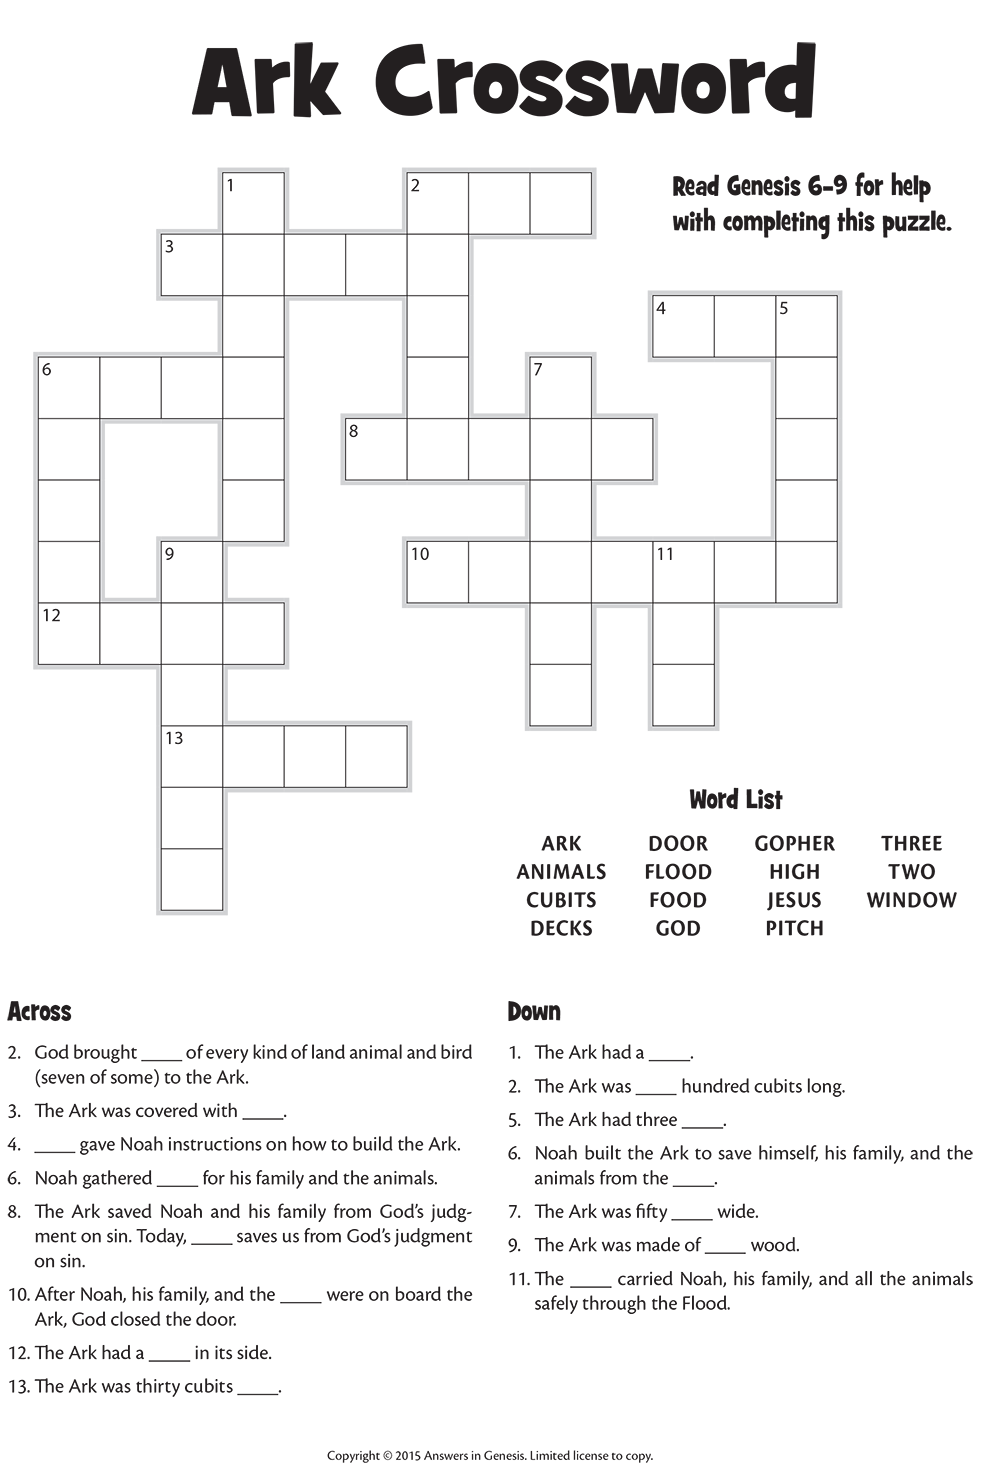 Ark Crossword